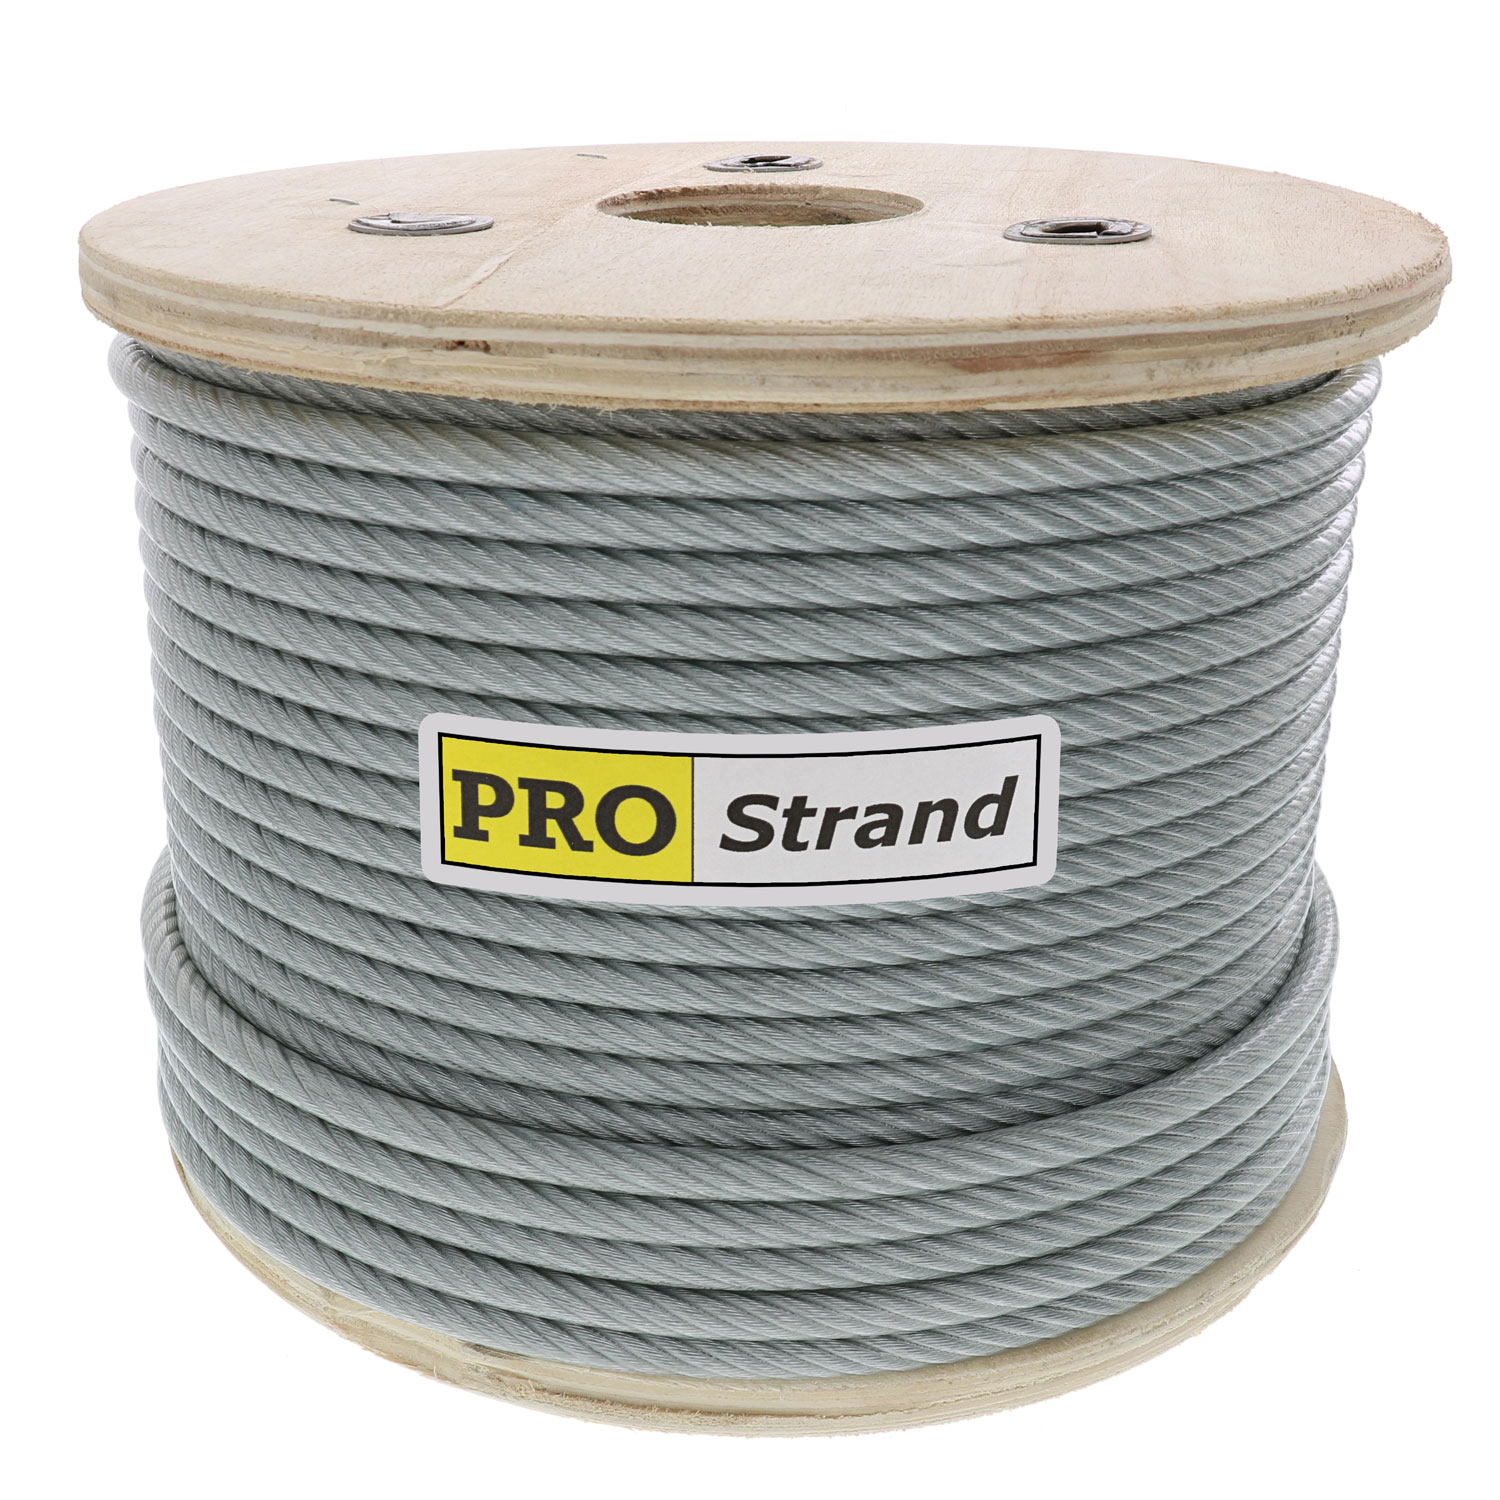 3⁄16 inch, 7 x 19 Vinyl Coated Galvanized Cable